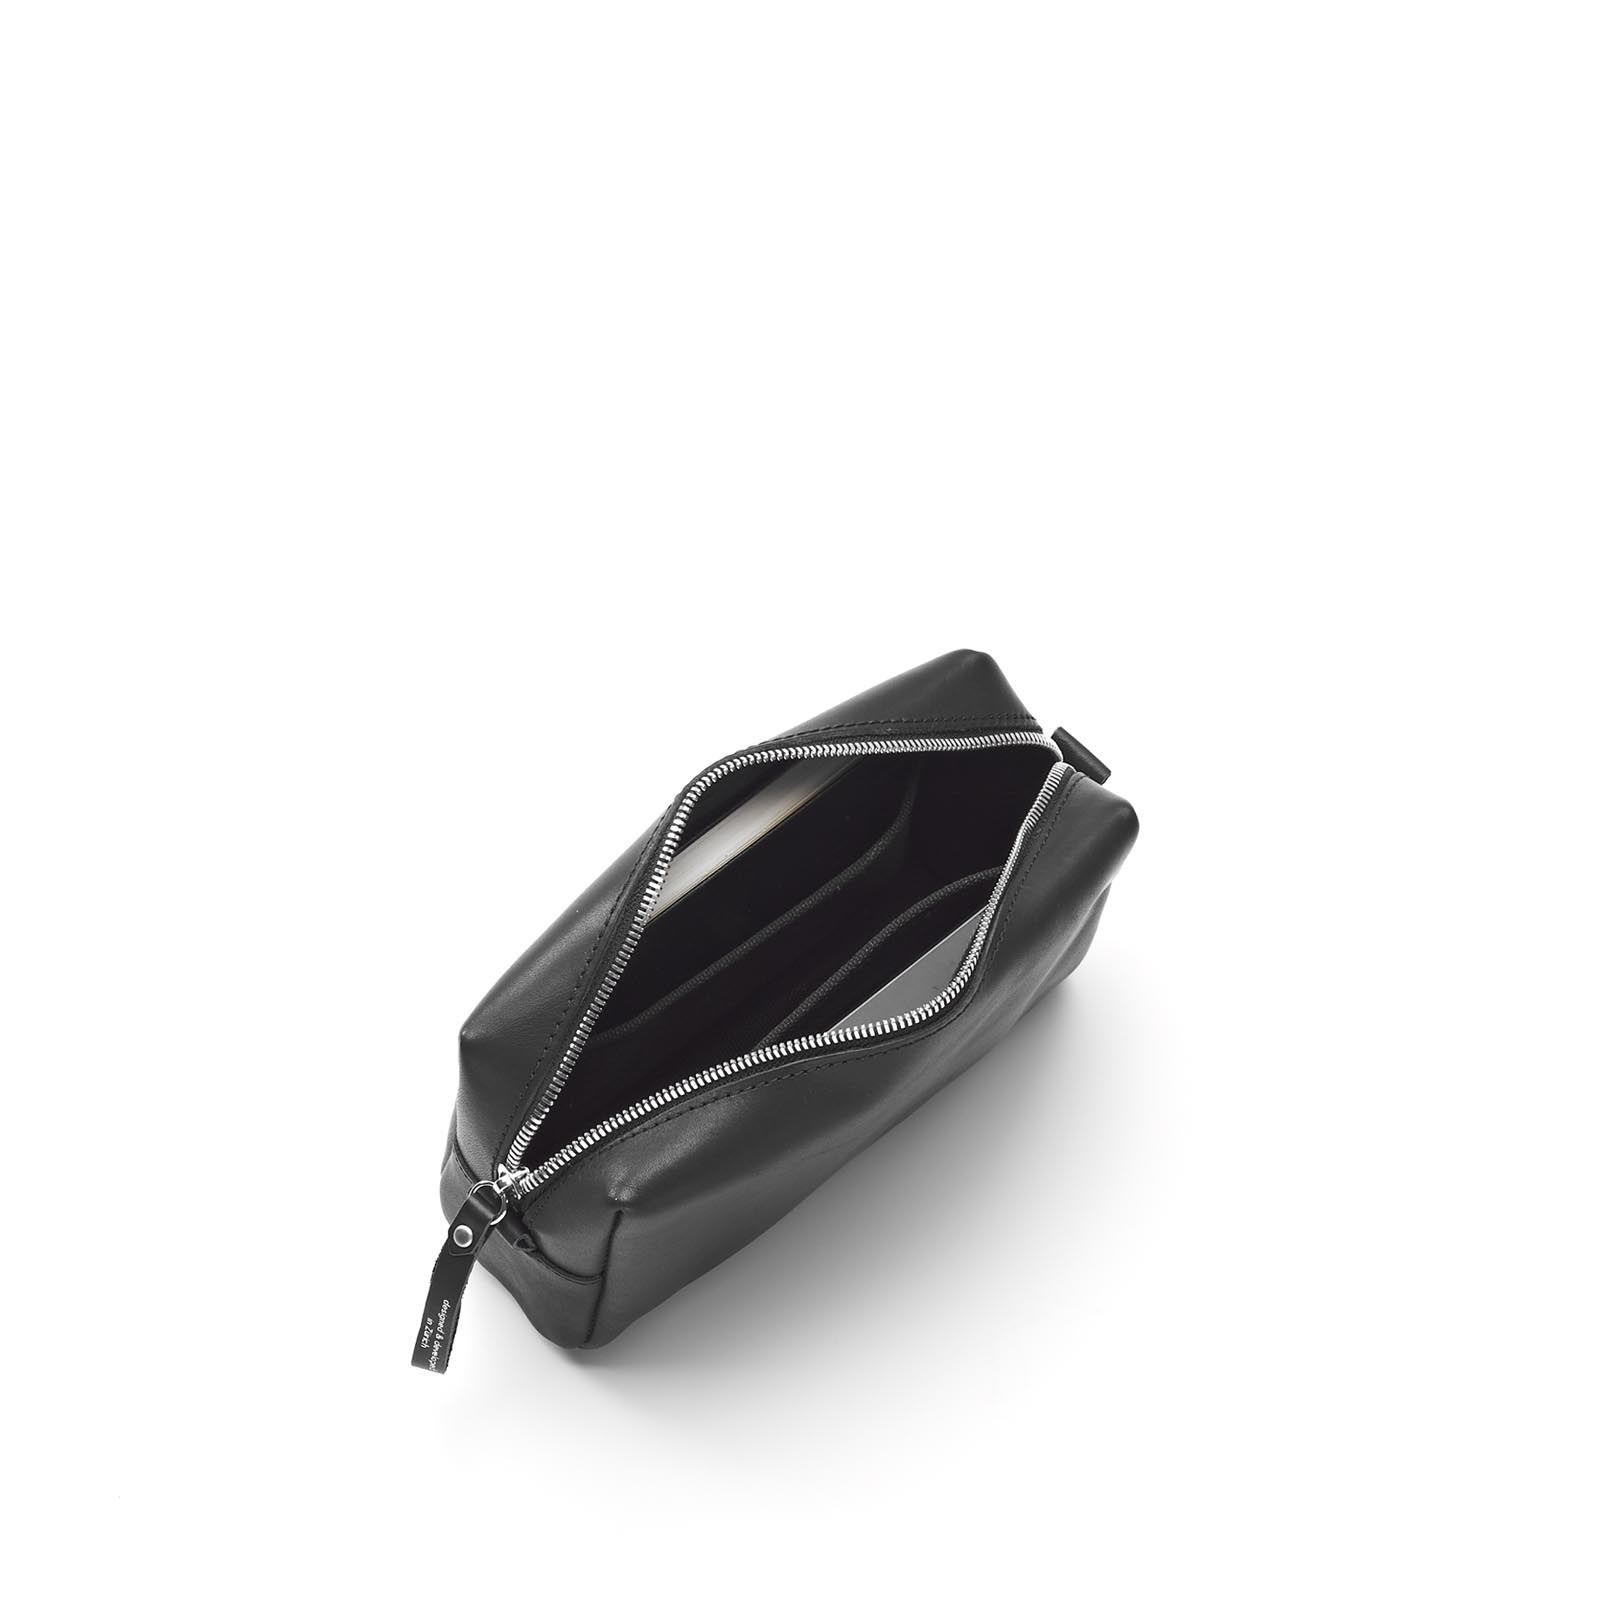 Amenity Pouch - Black Leather Canvas